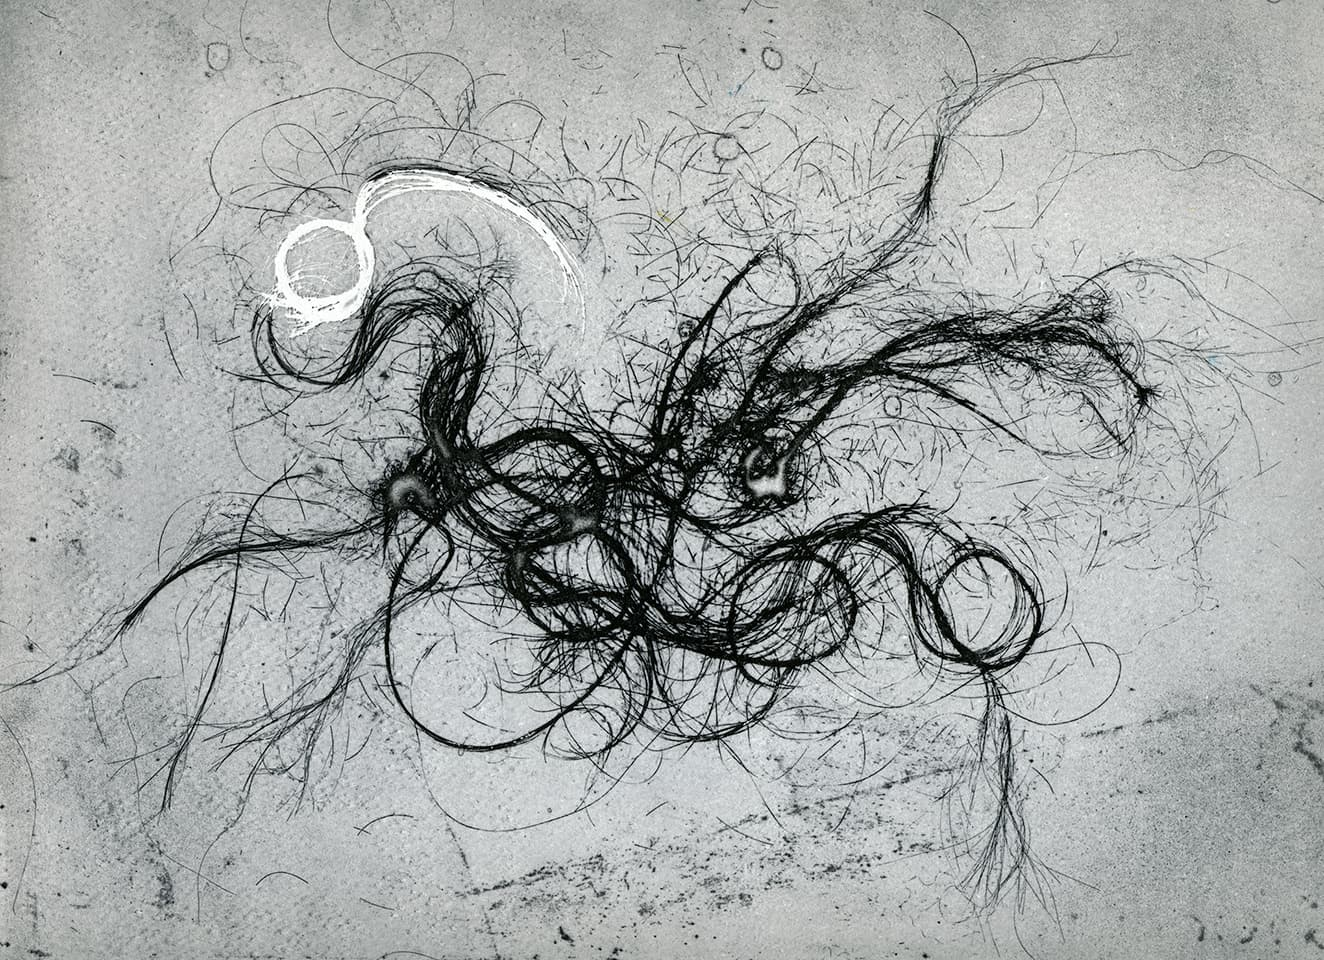 <strong>The Entangled Self 7</strong>, Susan Aldworth, etching, 25 x 31 cms, 2014.